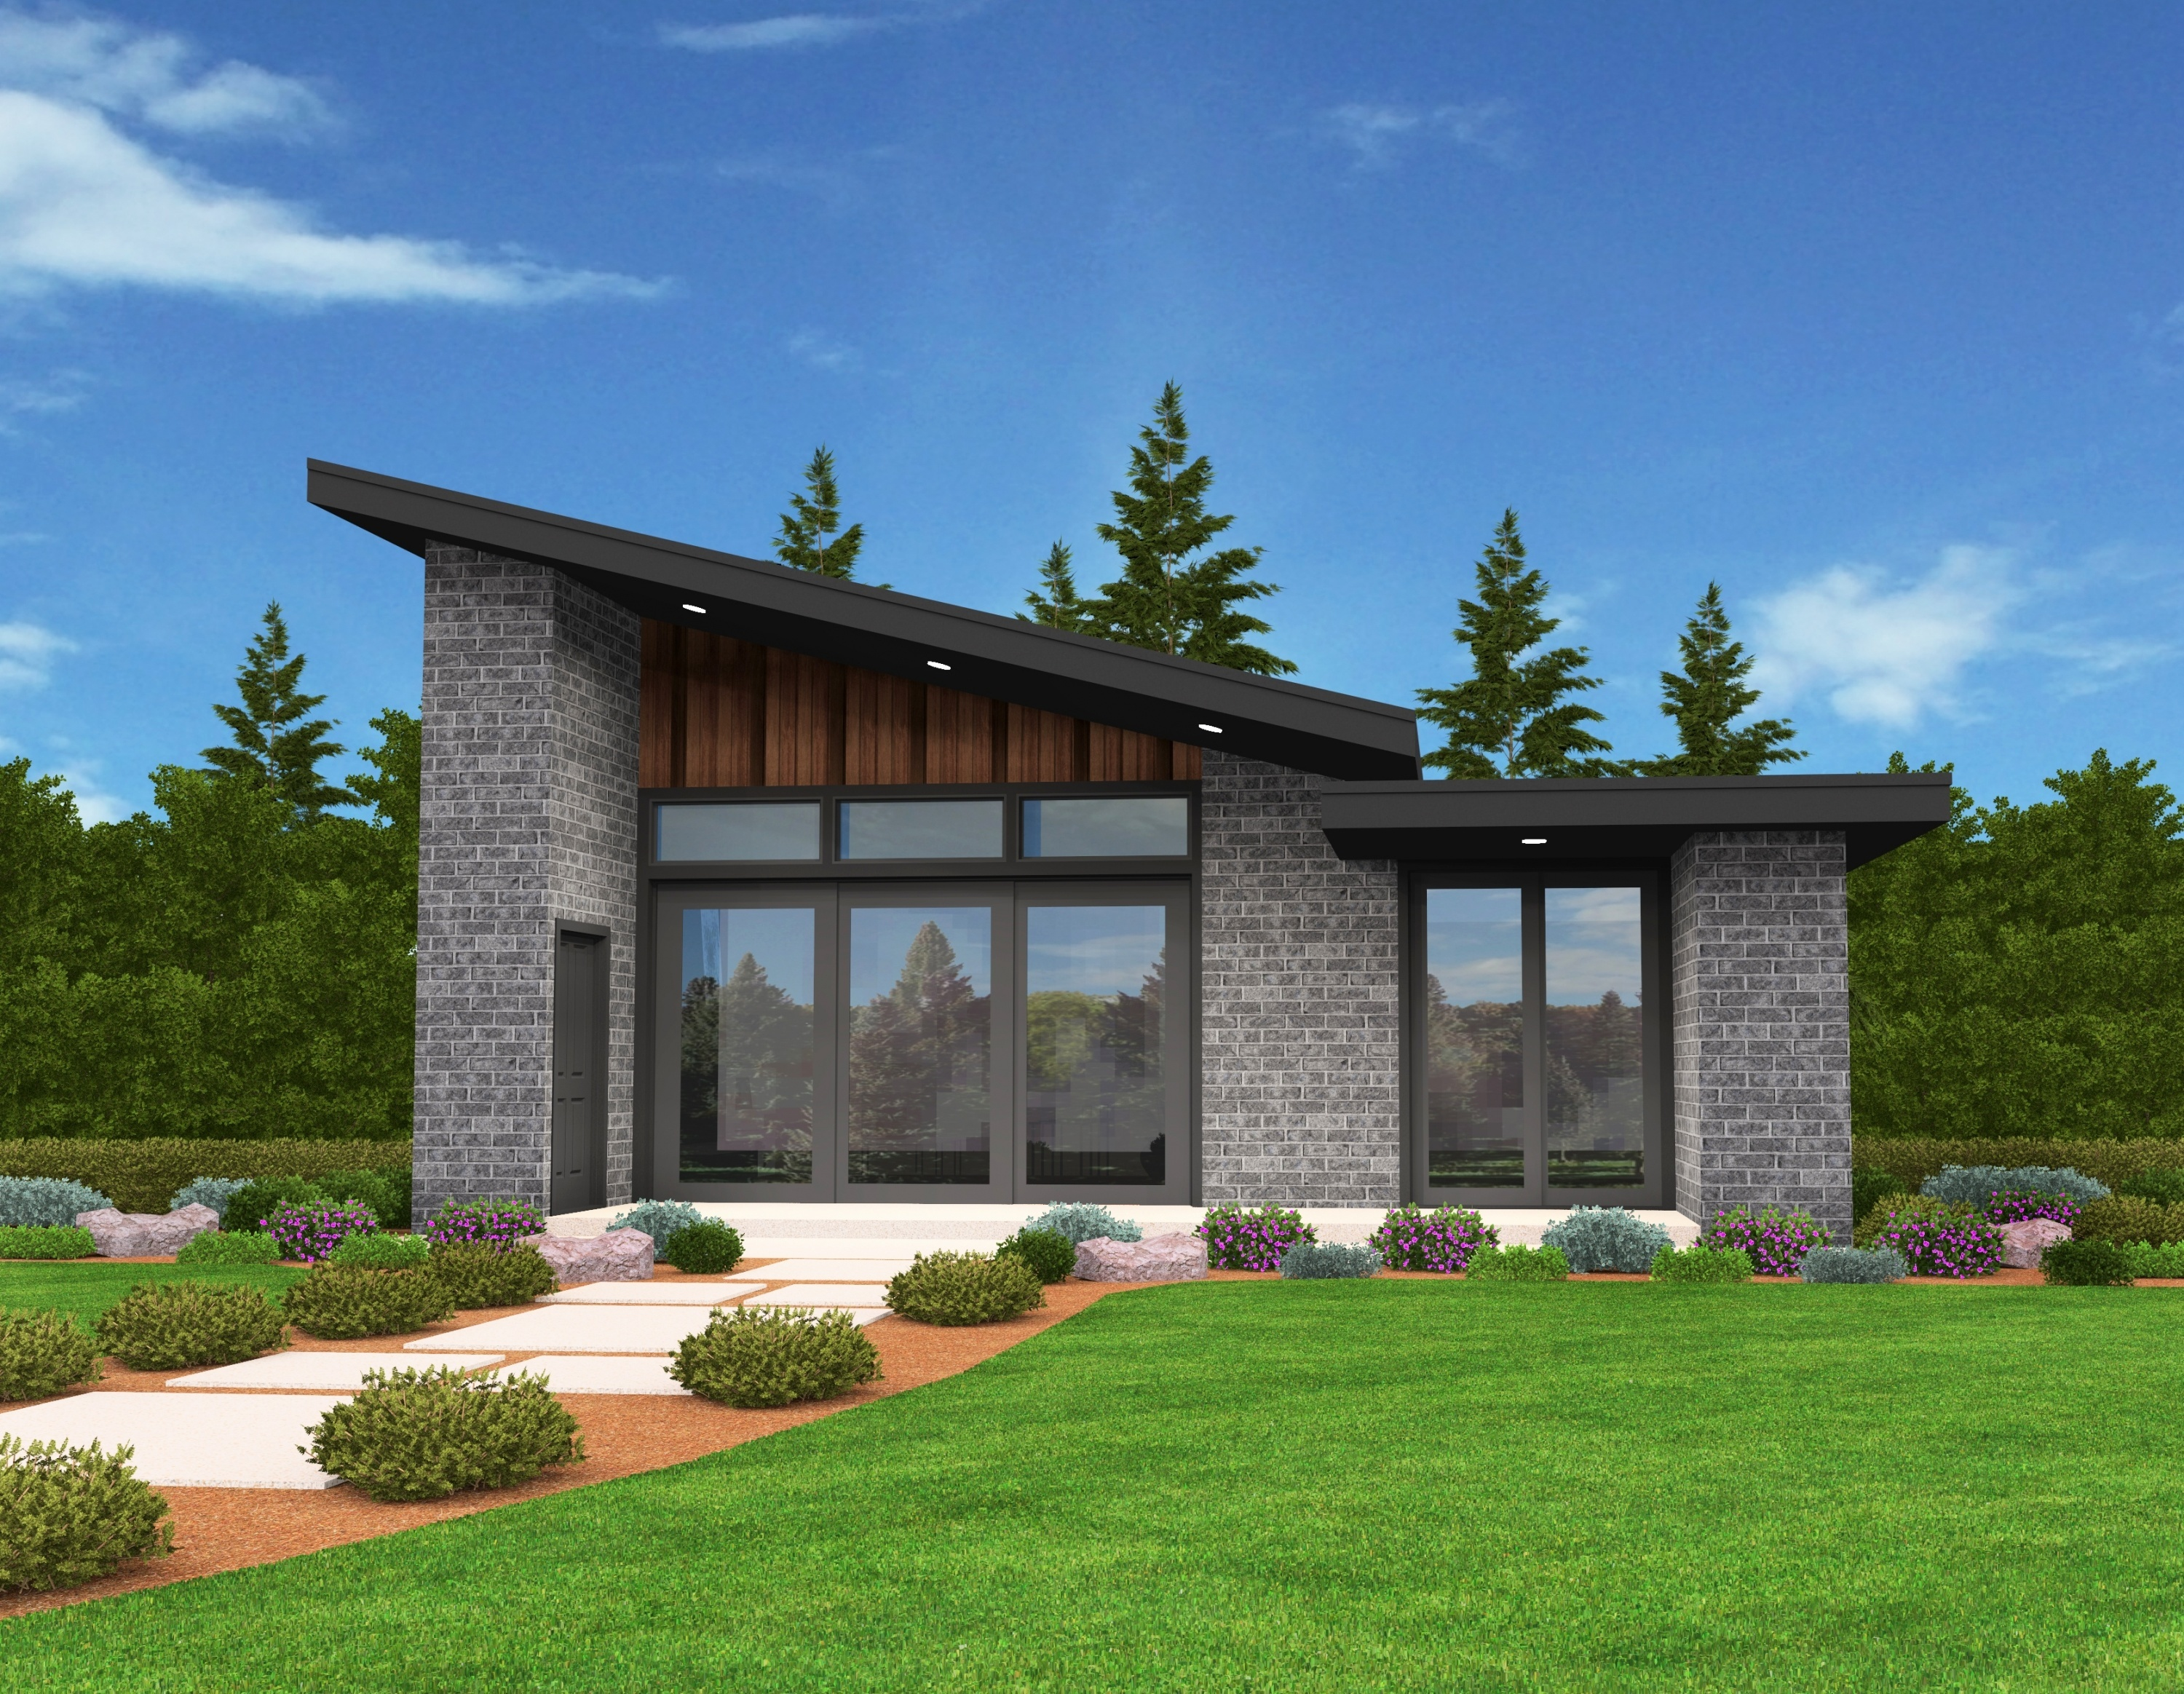 MMA 640 Neptune Rear OPT 04 - 42+ Small Two Story Modern House Floor Plans Pics